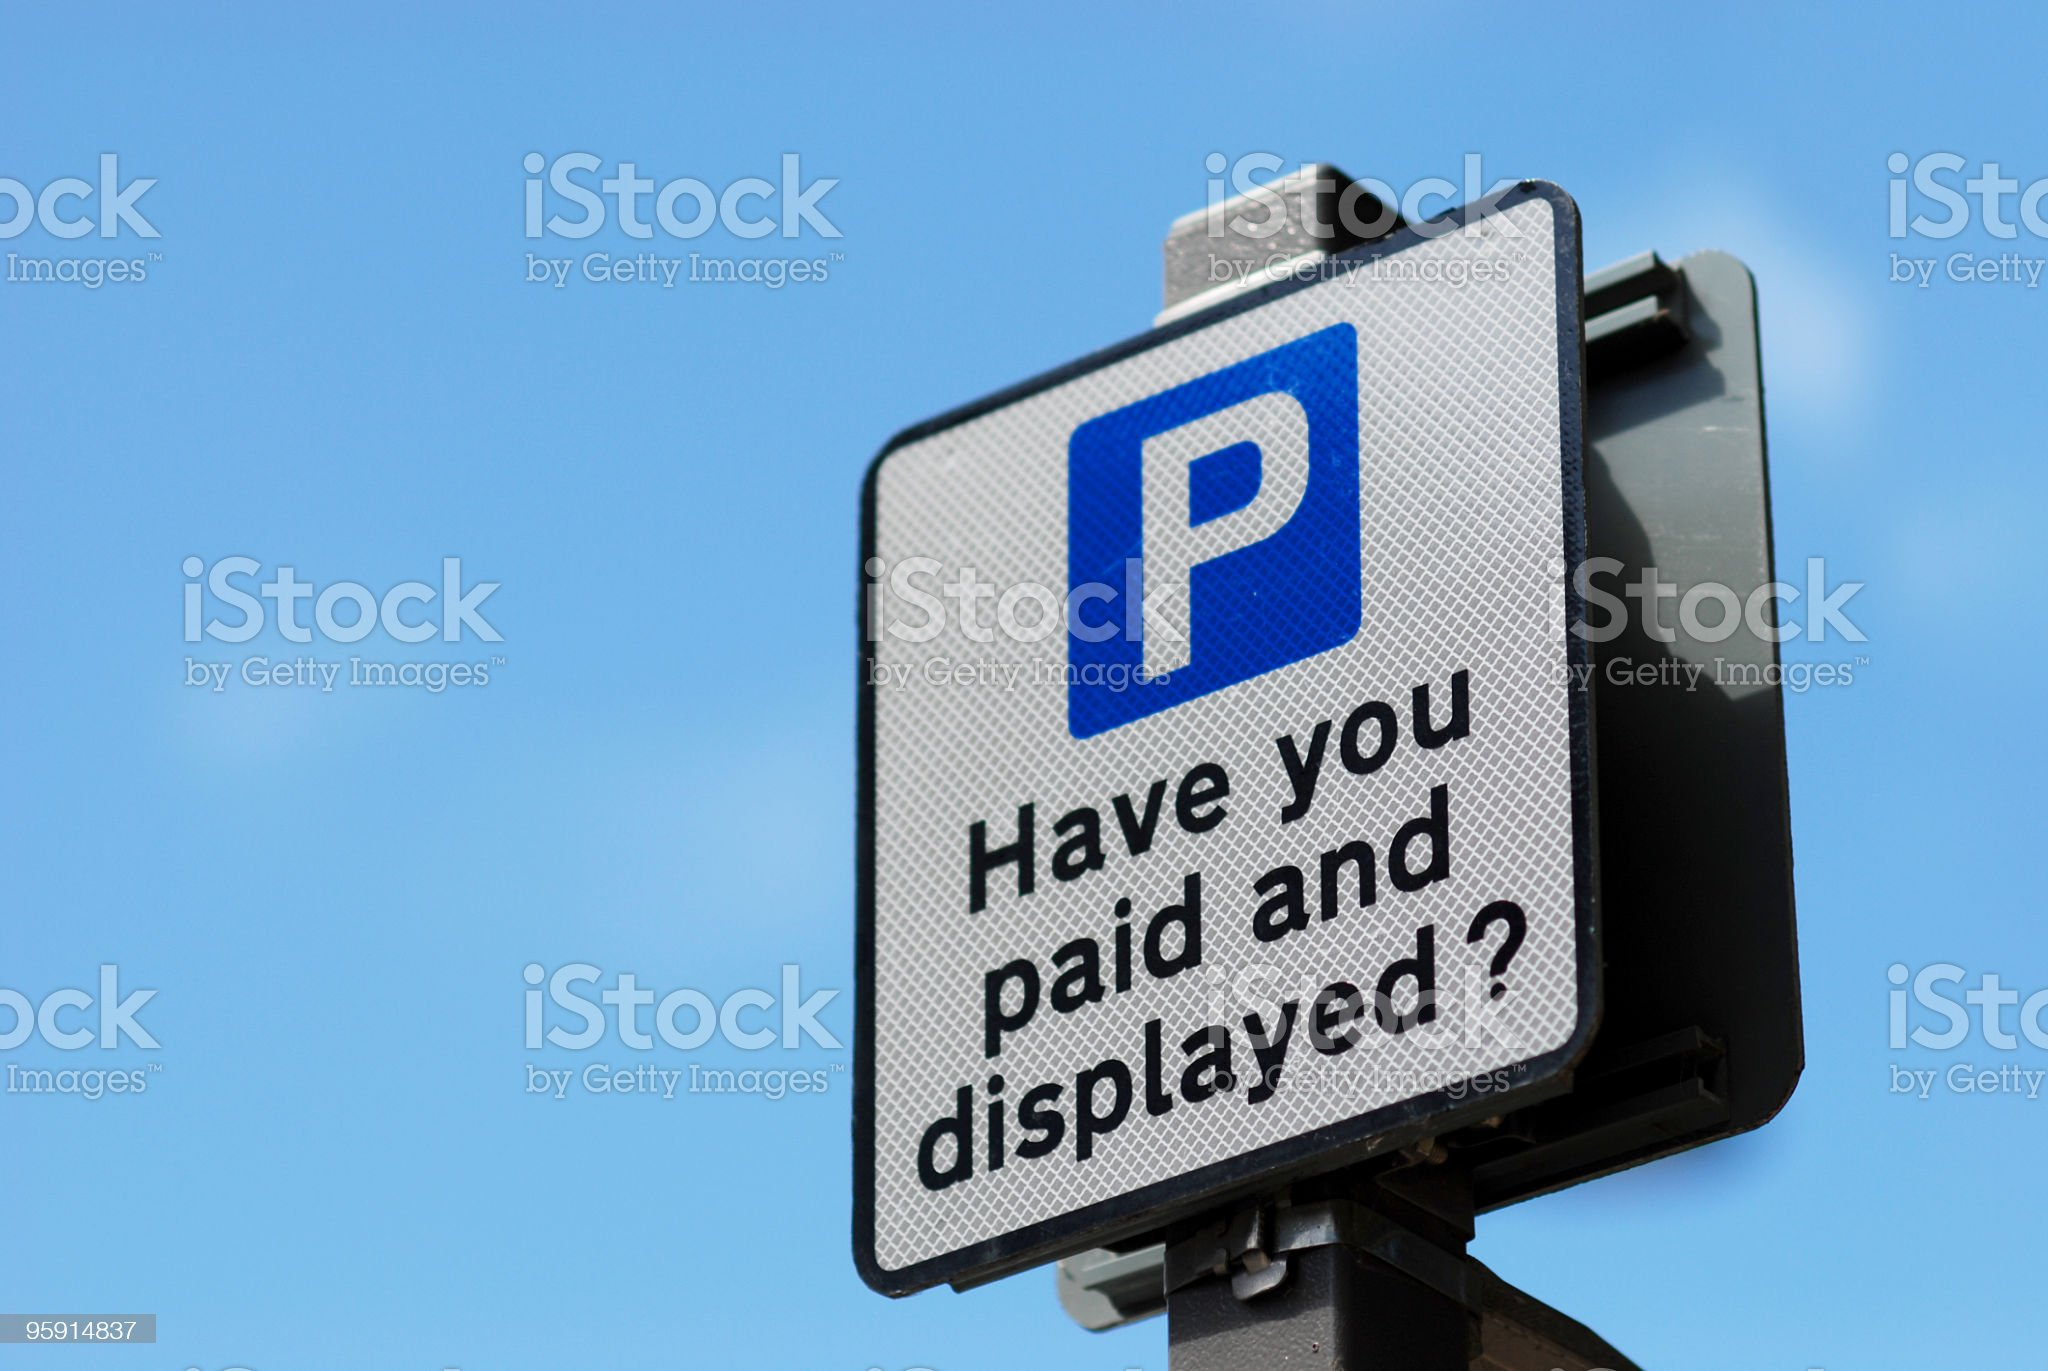 Have you paid and displayed parking sign royalty-free stock photo